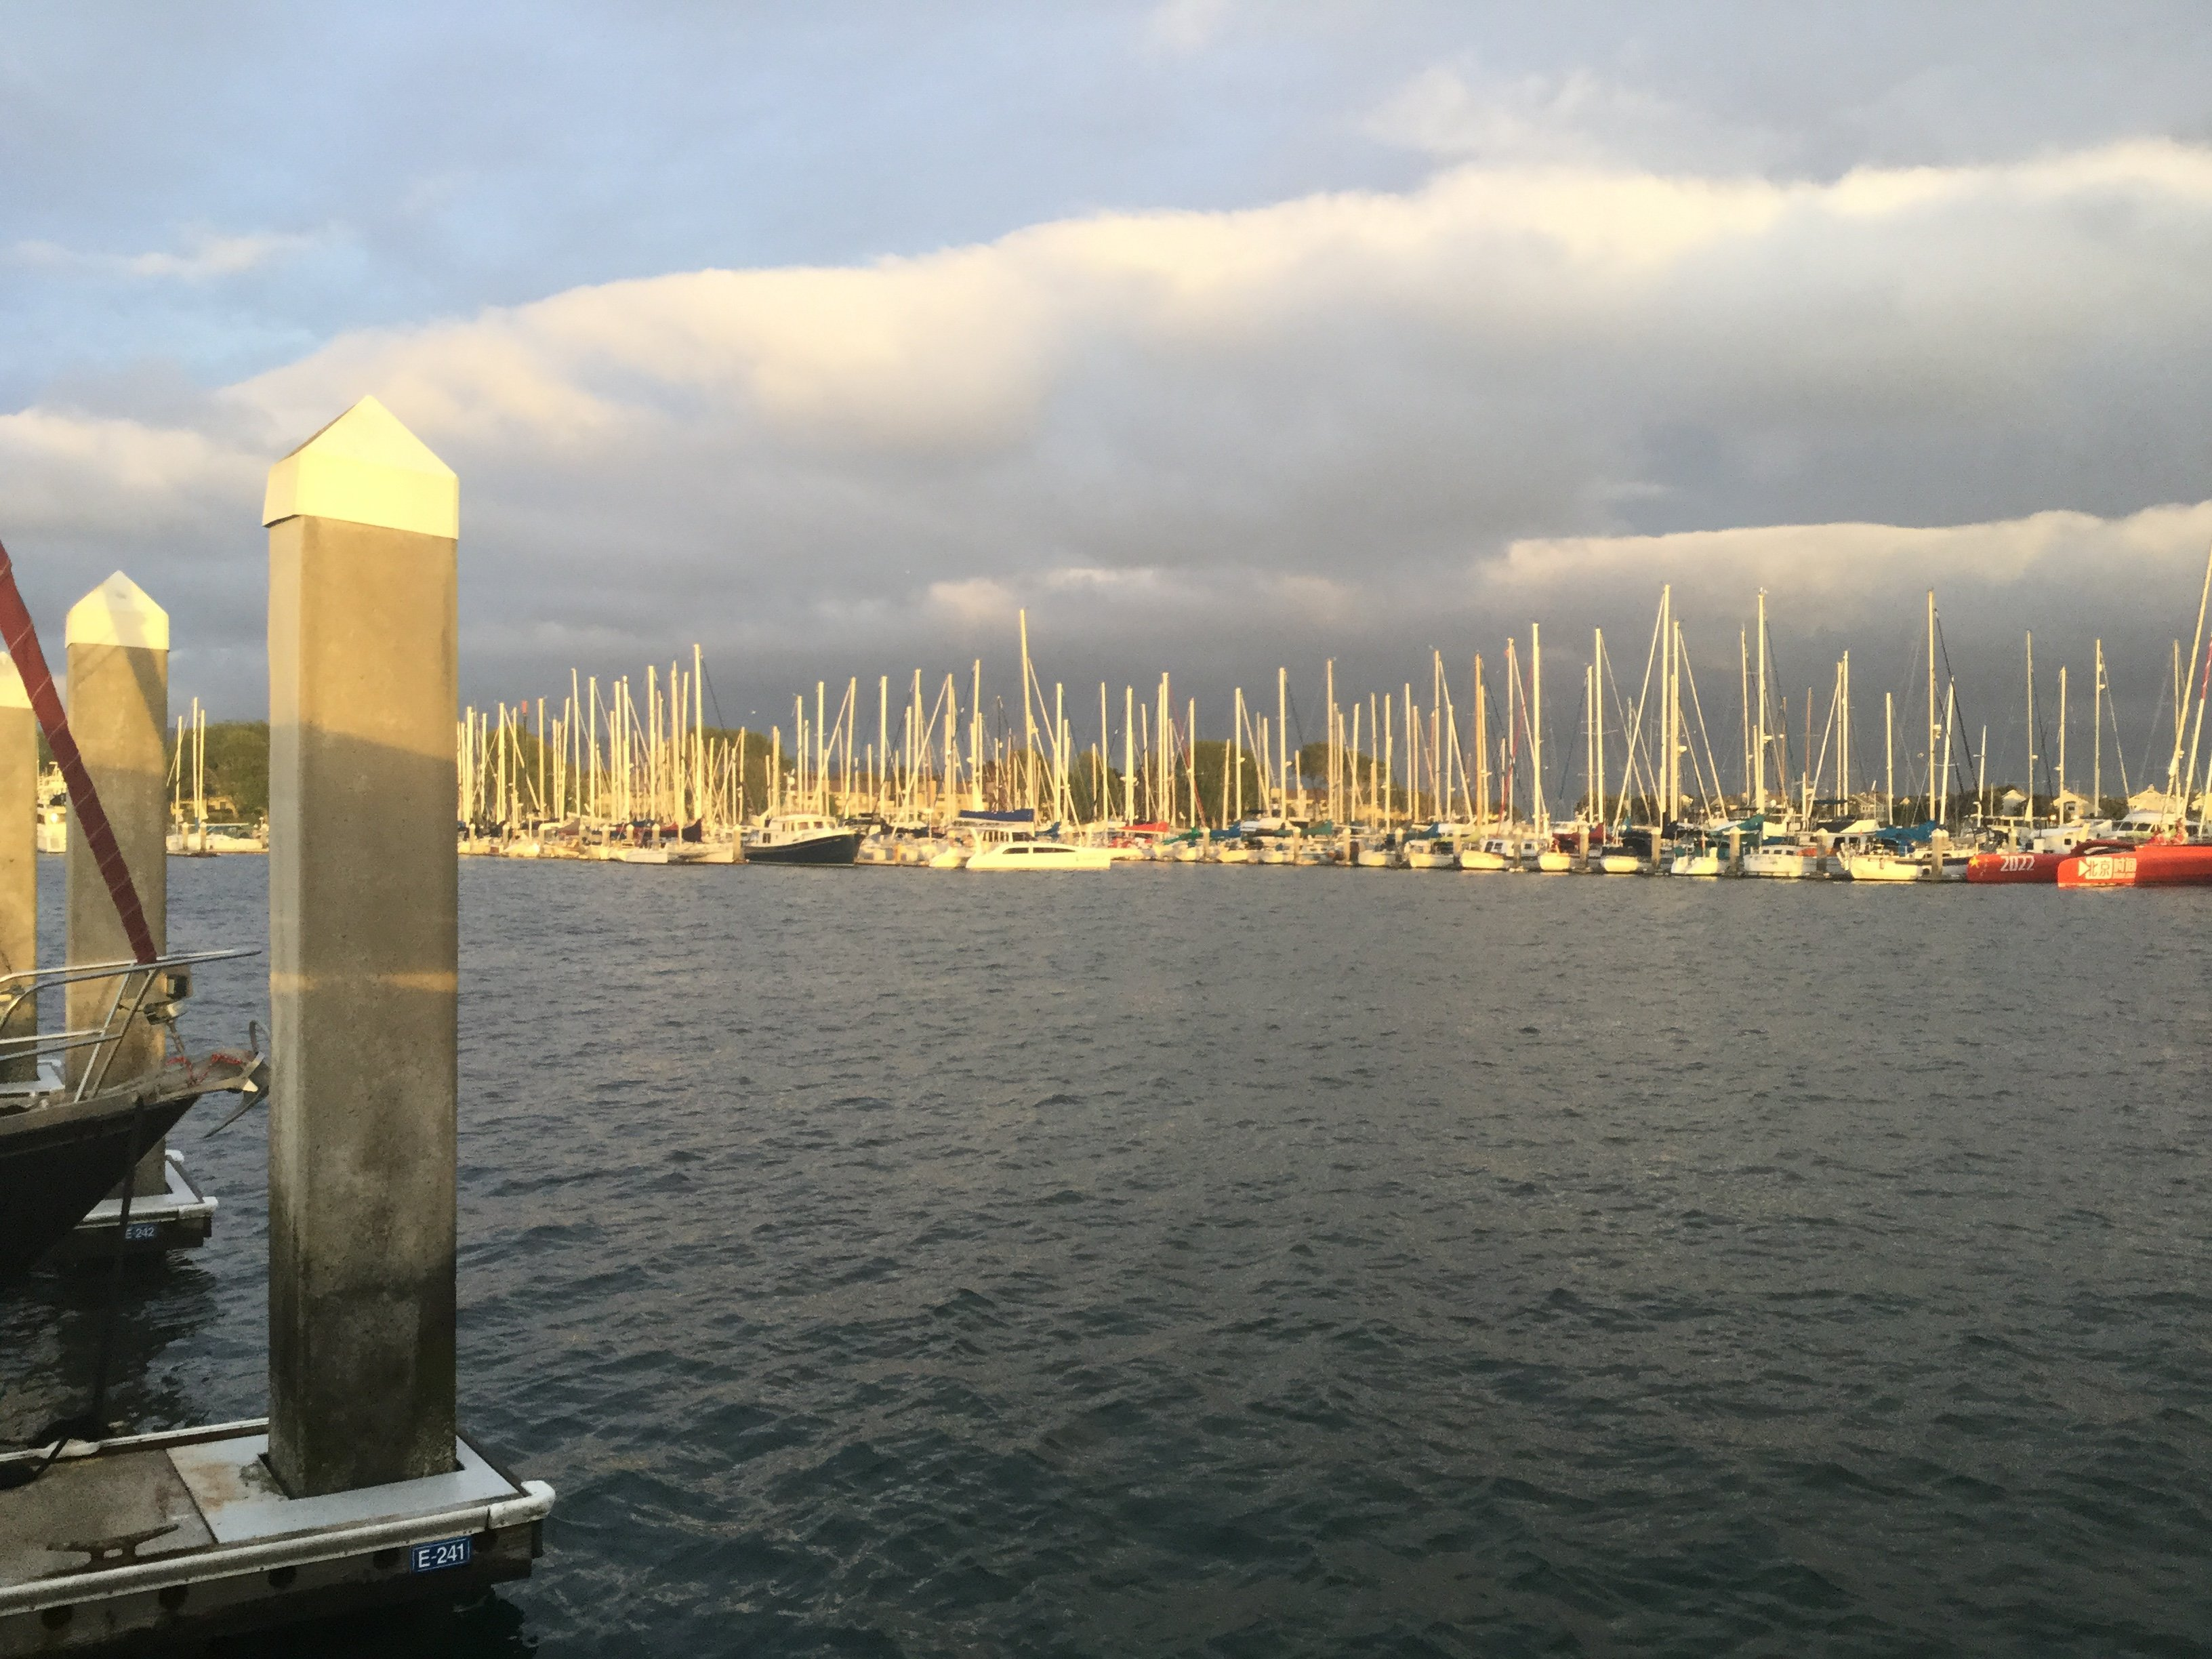 A view of the marina in East Bay California showing masts lit up in the sunset and brooding sky beyond.